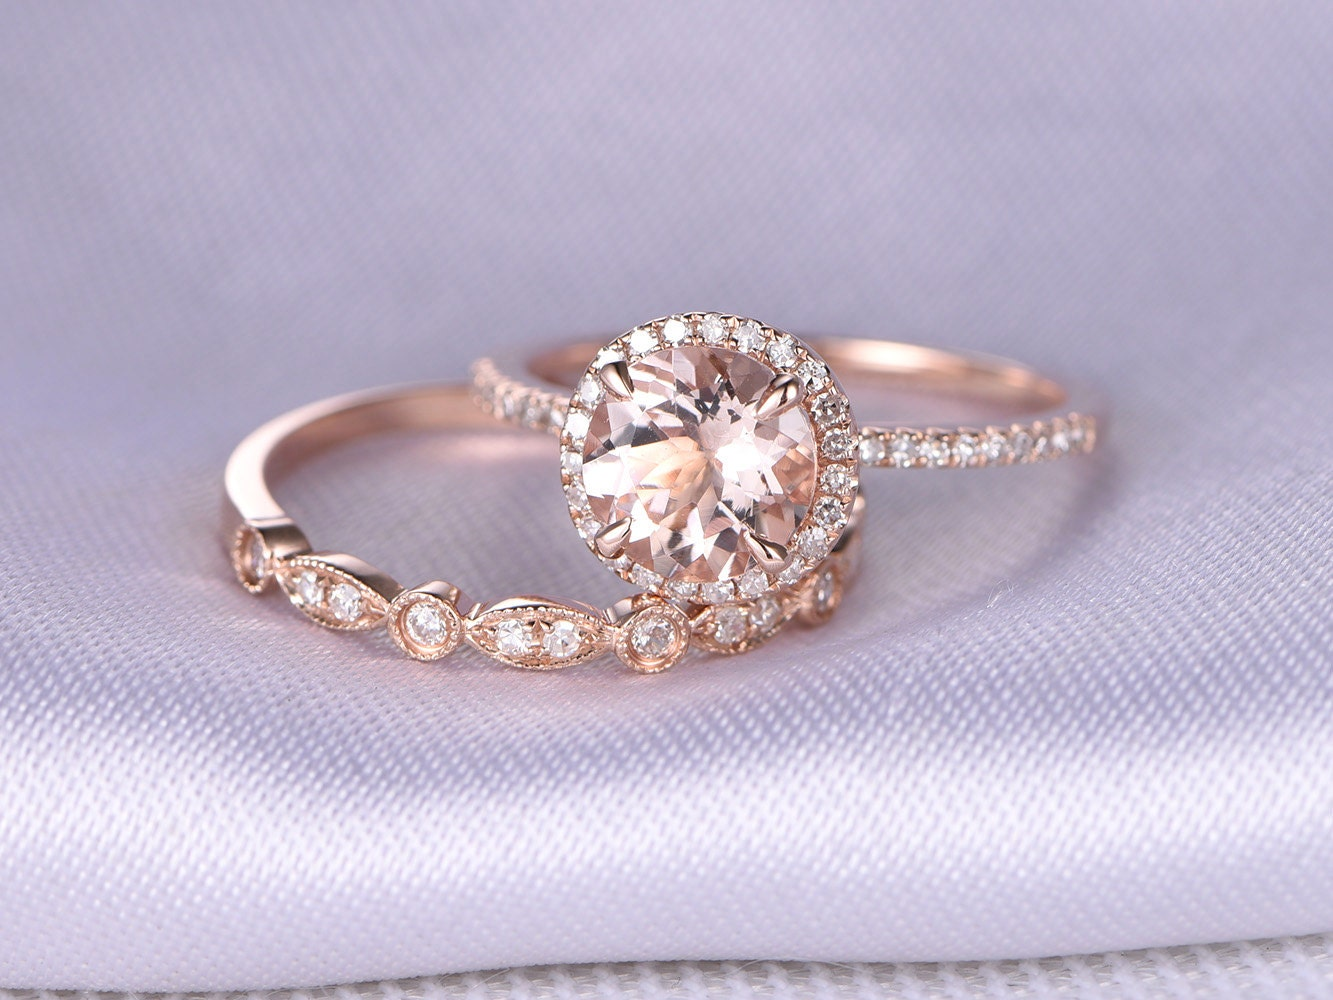 Morganite Engagement ring2pcs Wedding Ring Set14k Rose